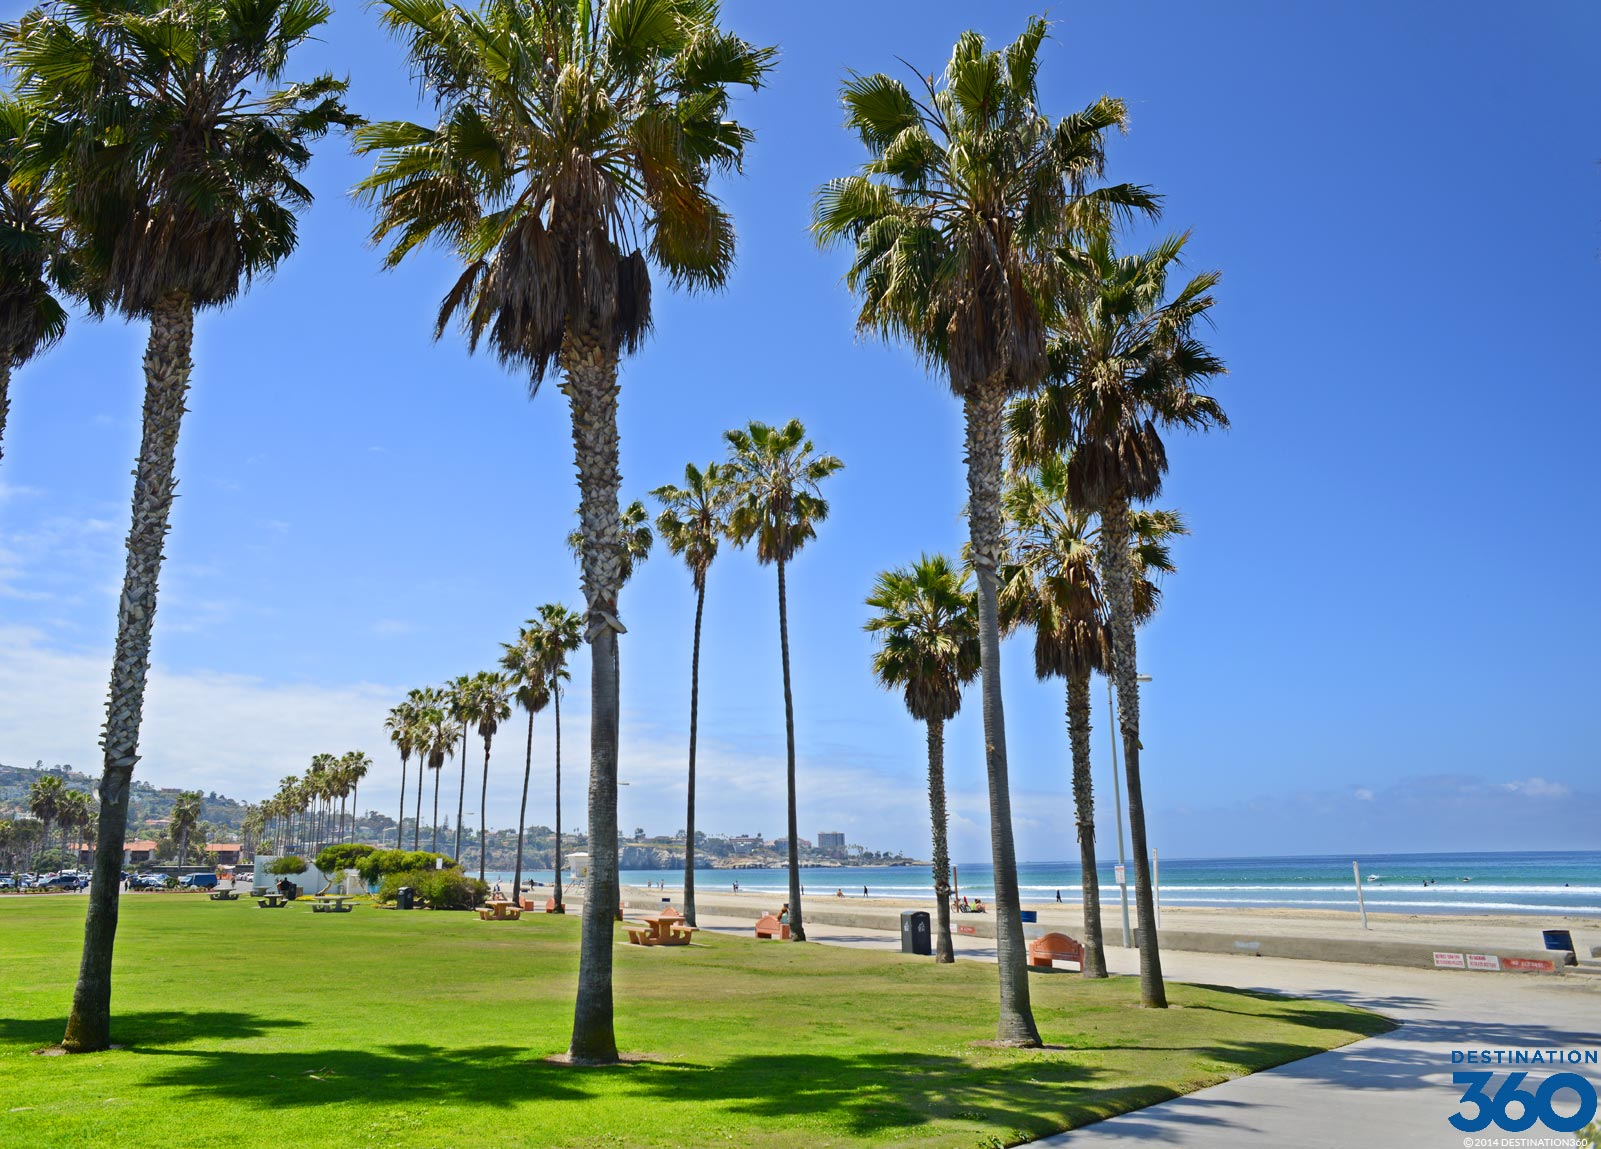 La Jolla Beaches Virtual Tour